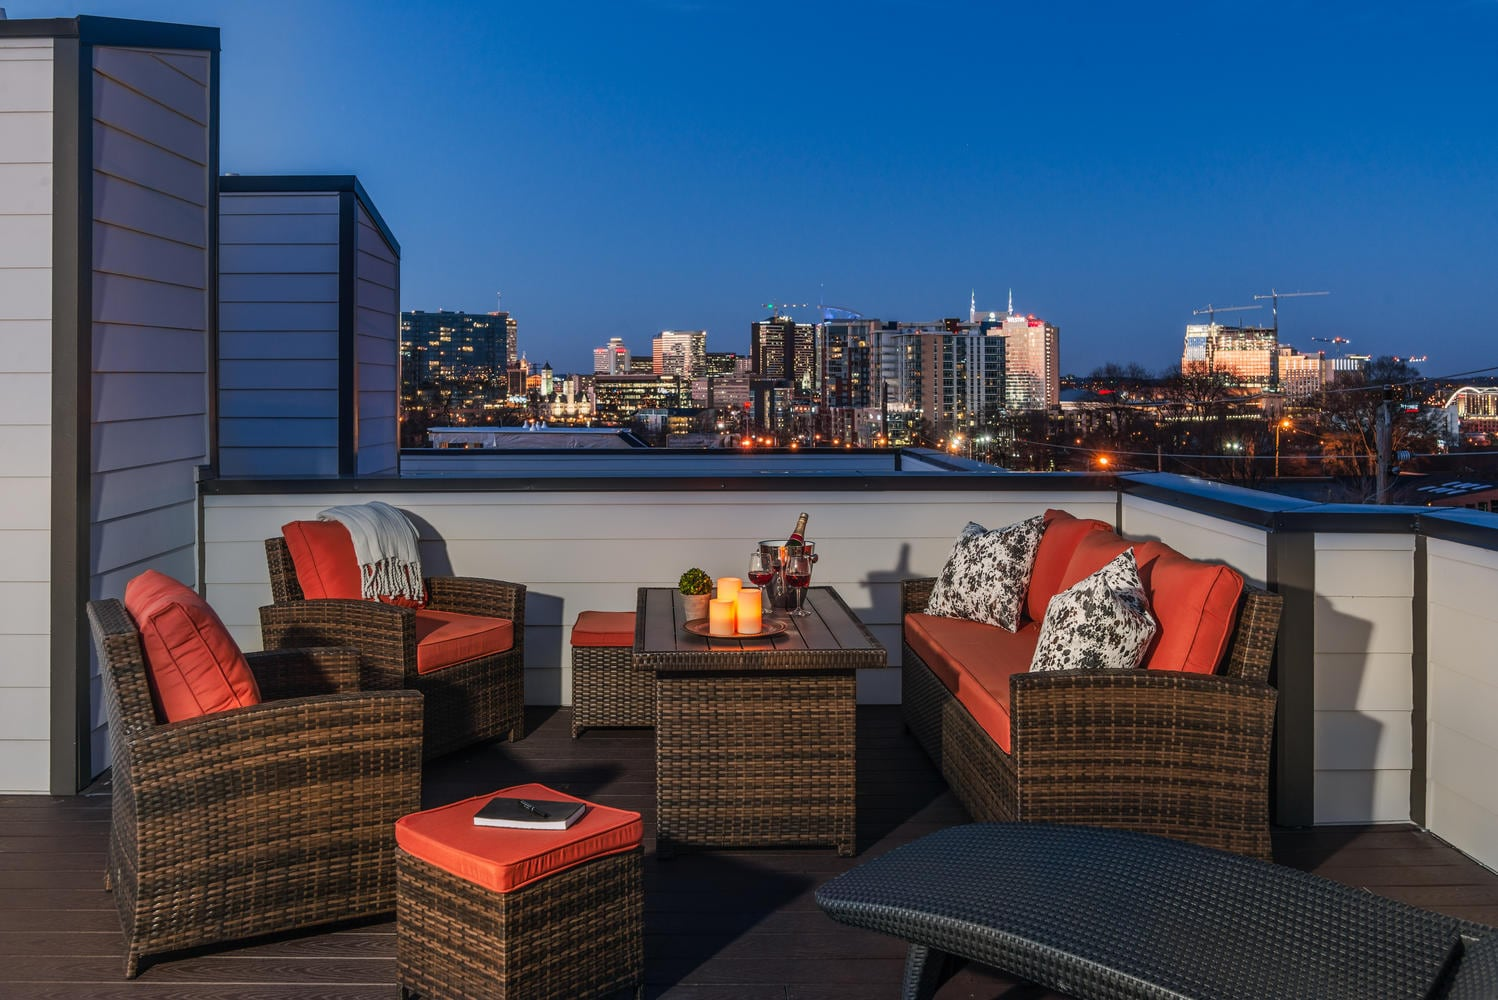 Welcome to Nashville! A sprawling, 900-square-foot rooftop deck boasts unobstructed views of the Nashville skyline.